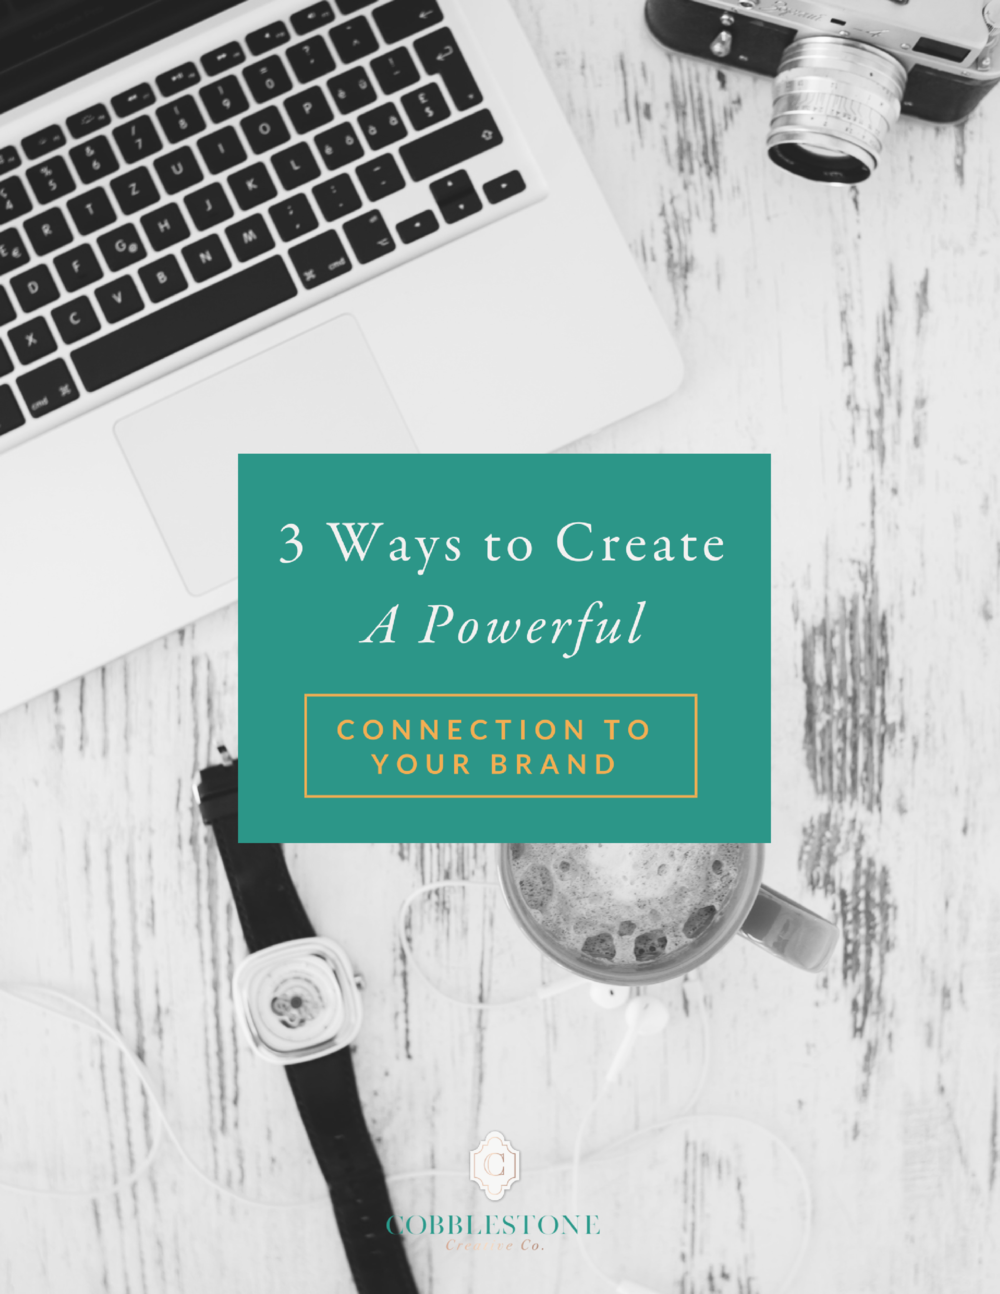 Creating a memorable, powerful brand experience is one of the best things you can do for your business. Your brand experience has the power to turn casual visitors into loyal fans. Click through to learn 3 ways you can strengthen your brand today.